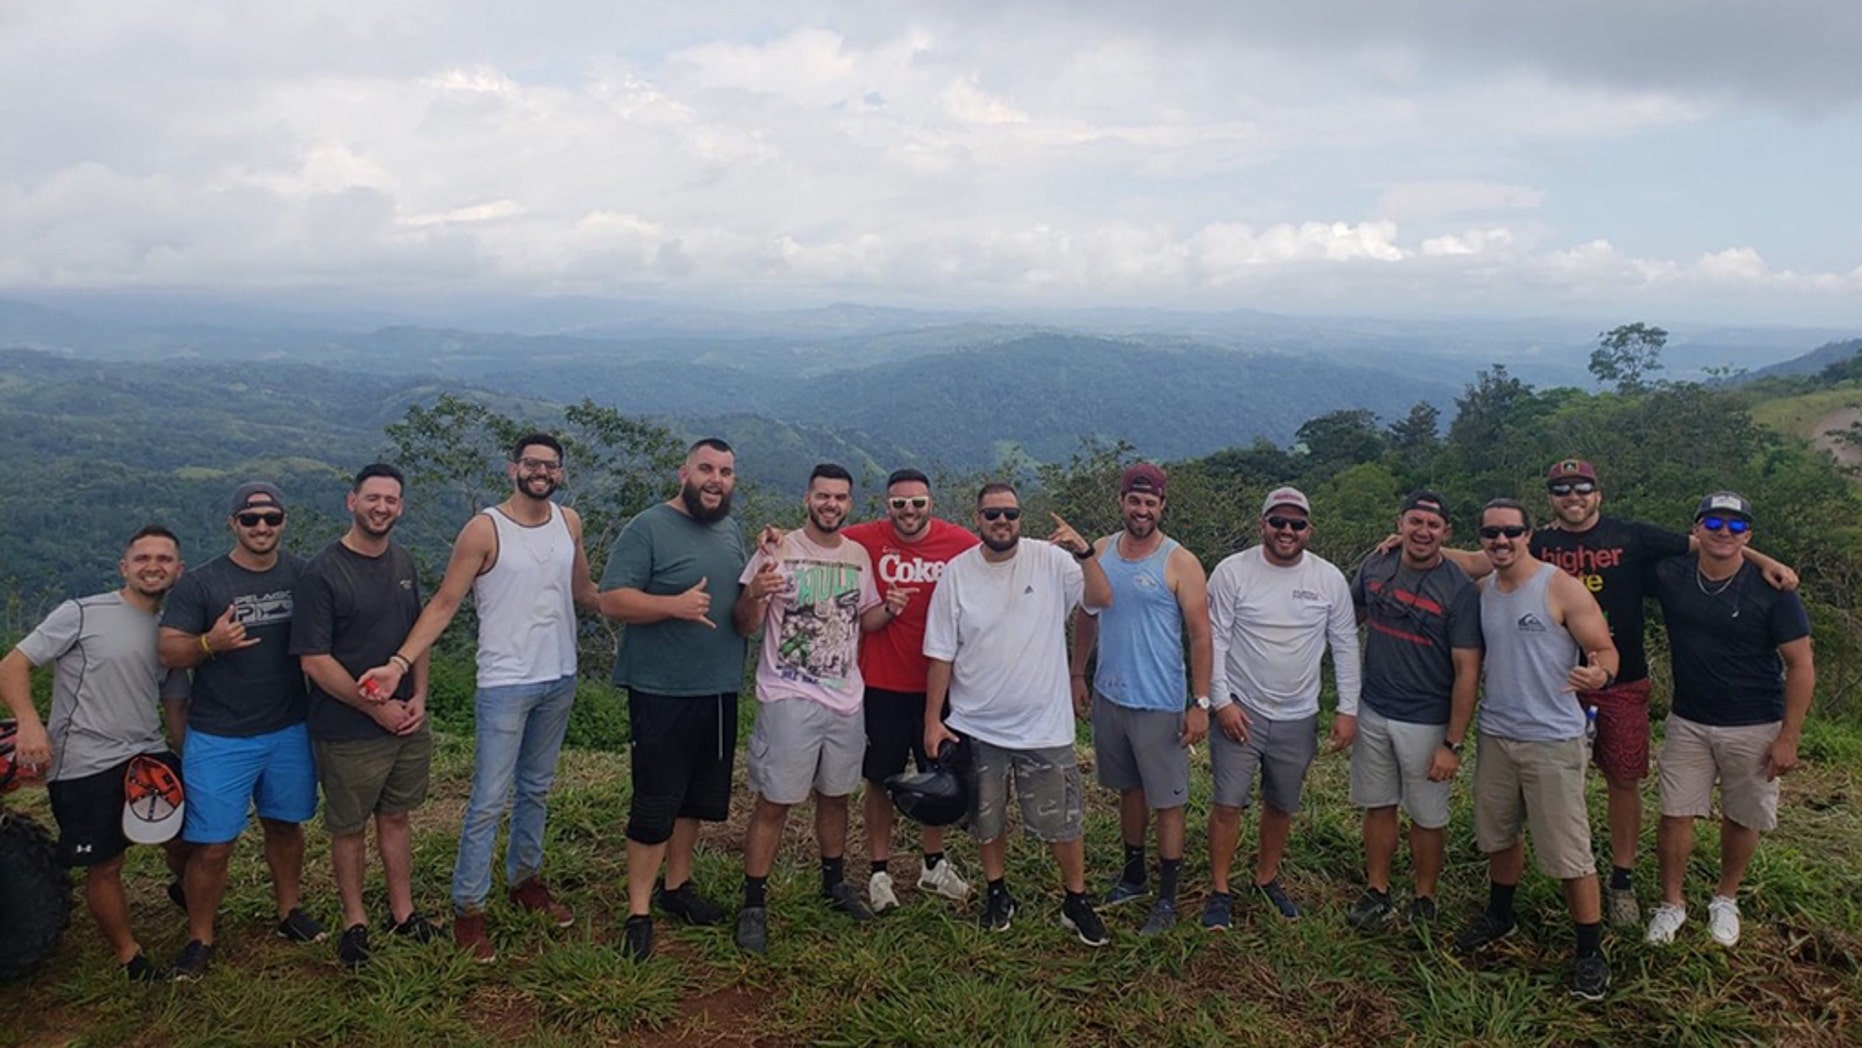 A bachelor party's doomedwhitewater-rafting excursion in CostaRica left four people dead.